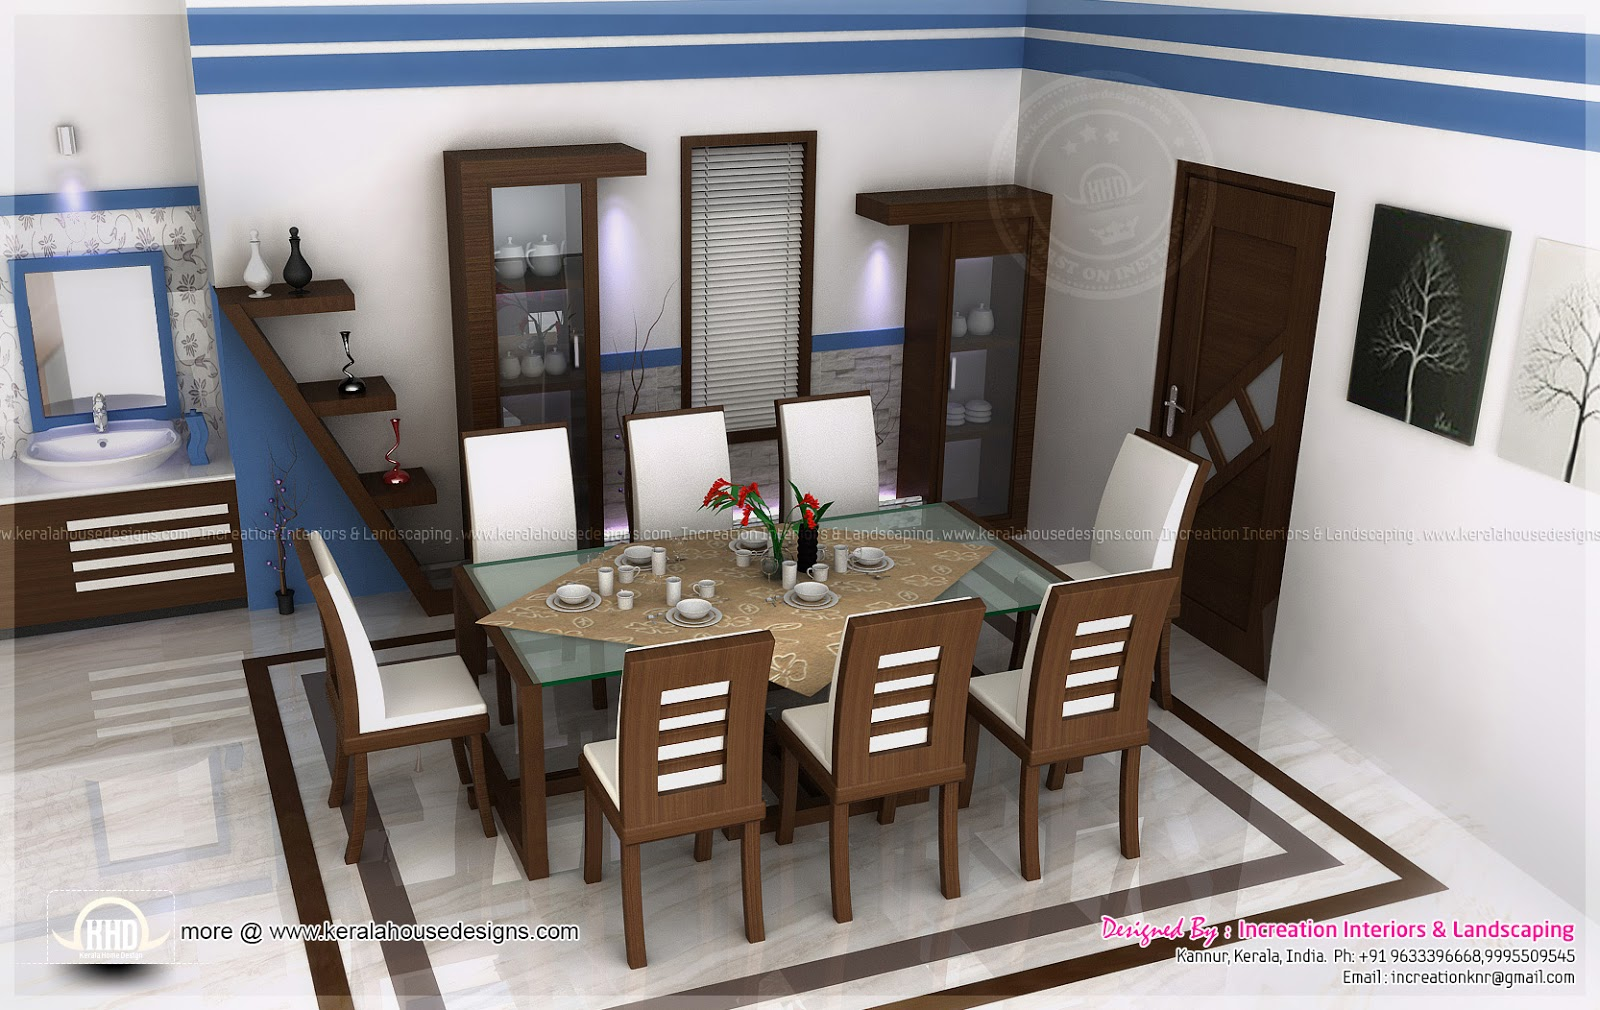 House interior ideas in 3d rendering kerala home design for Latest home interior design